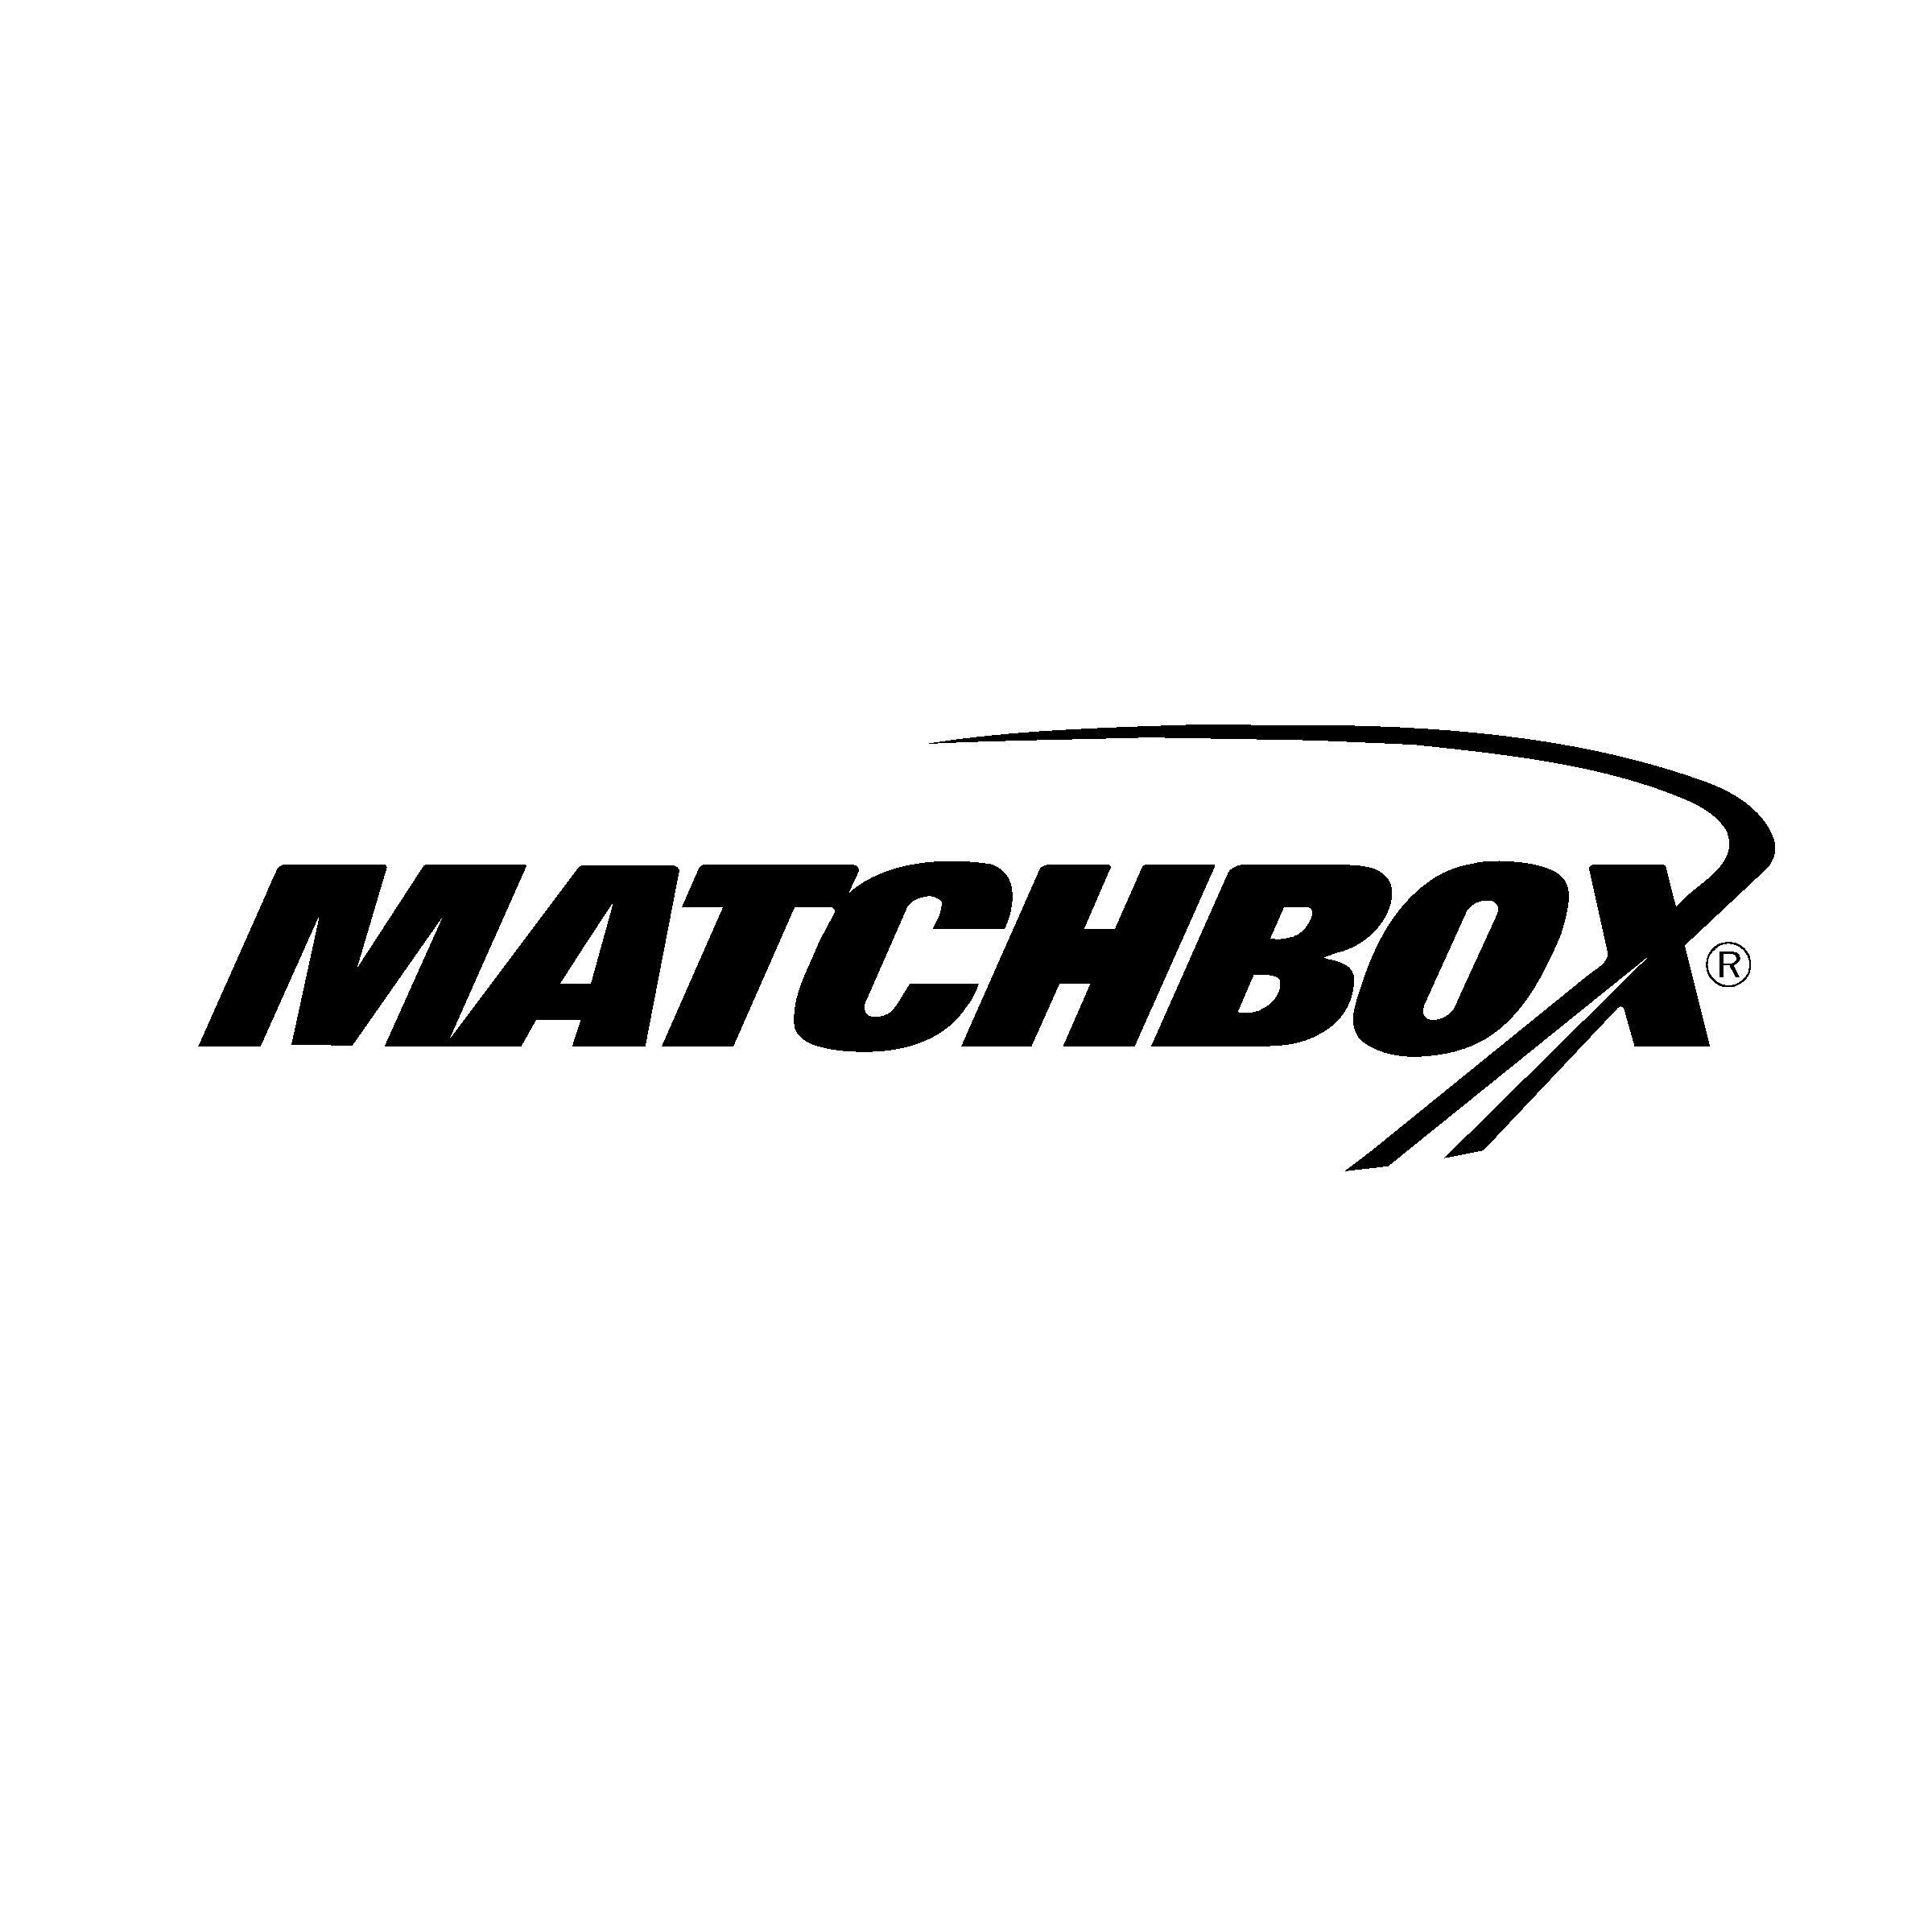 Matchbox Logo PNG Transparent & SVG Vector.